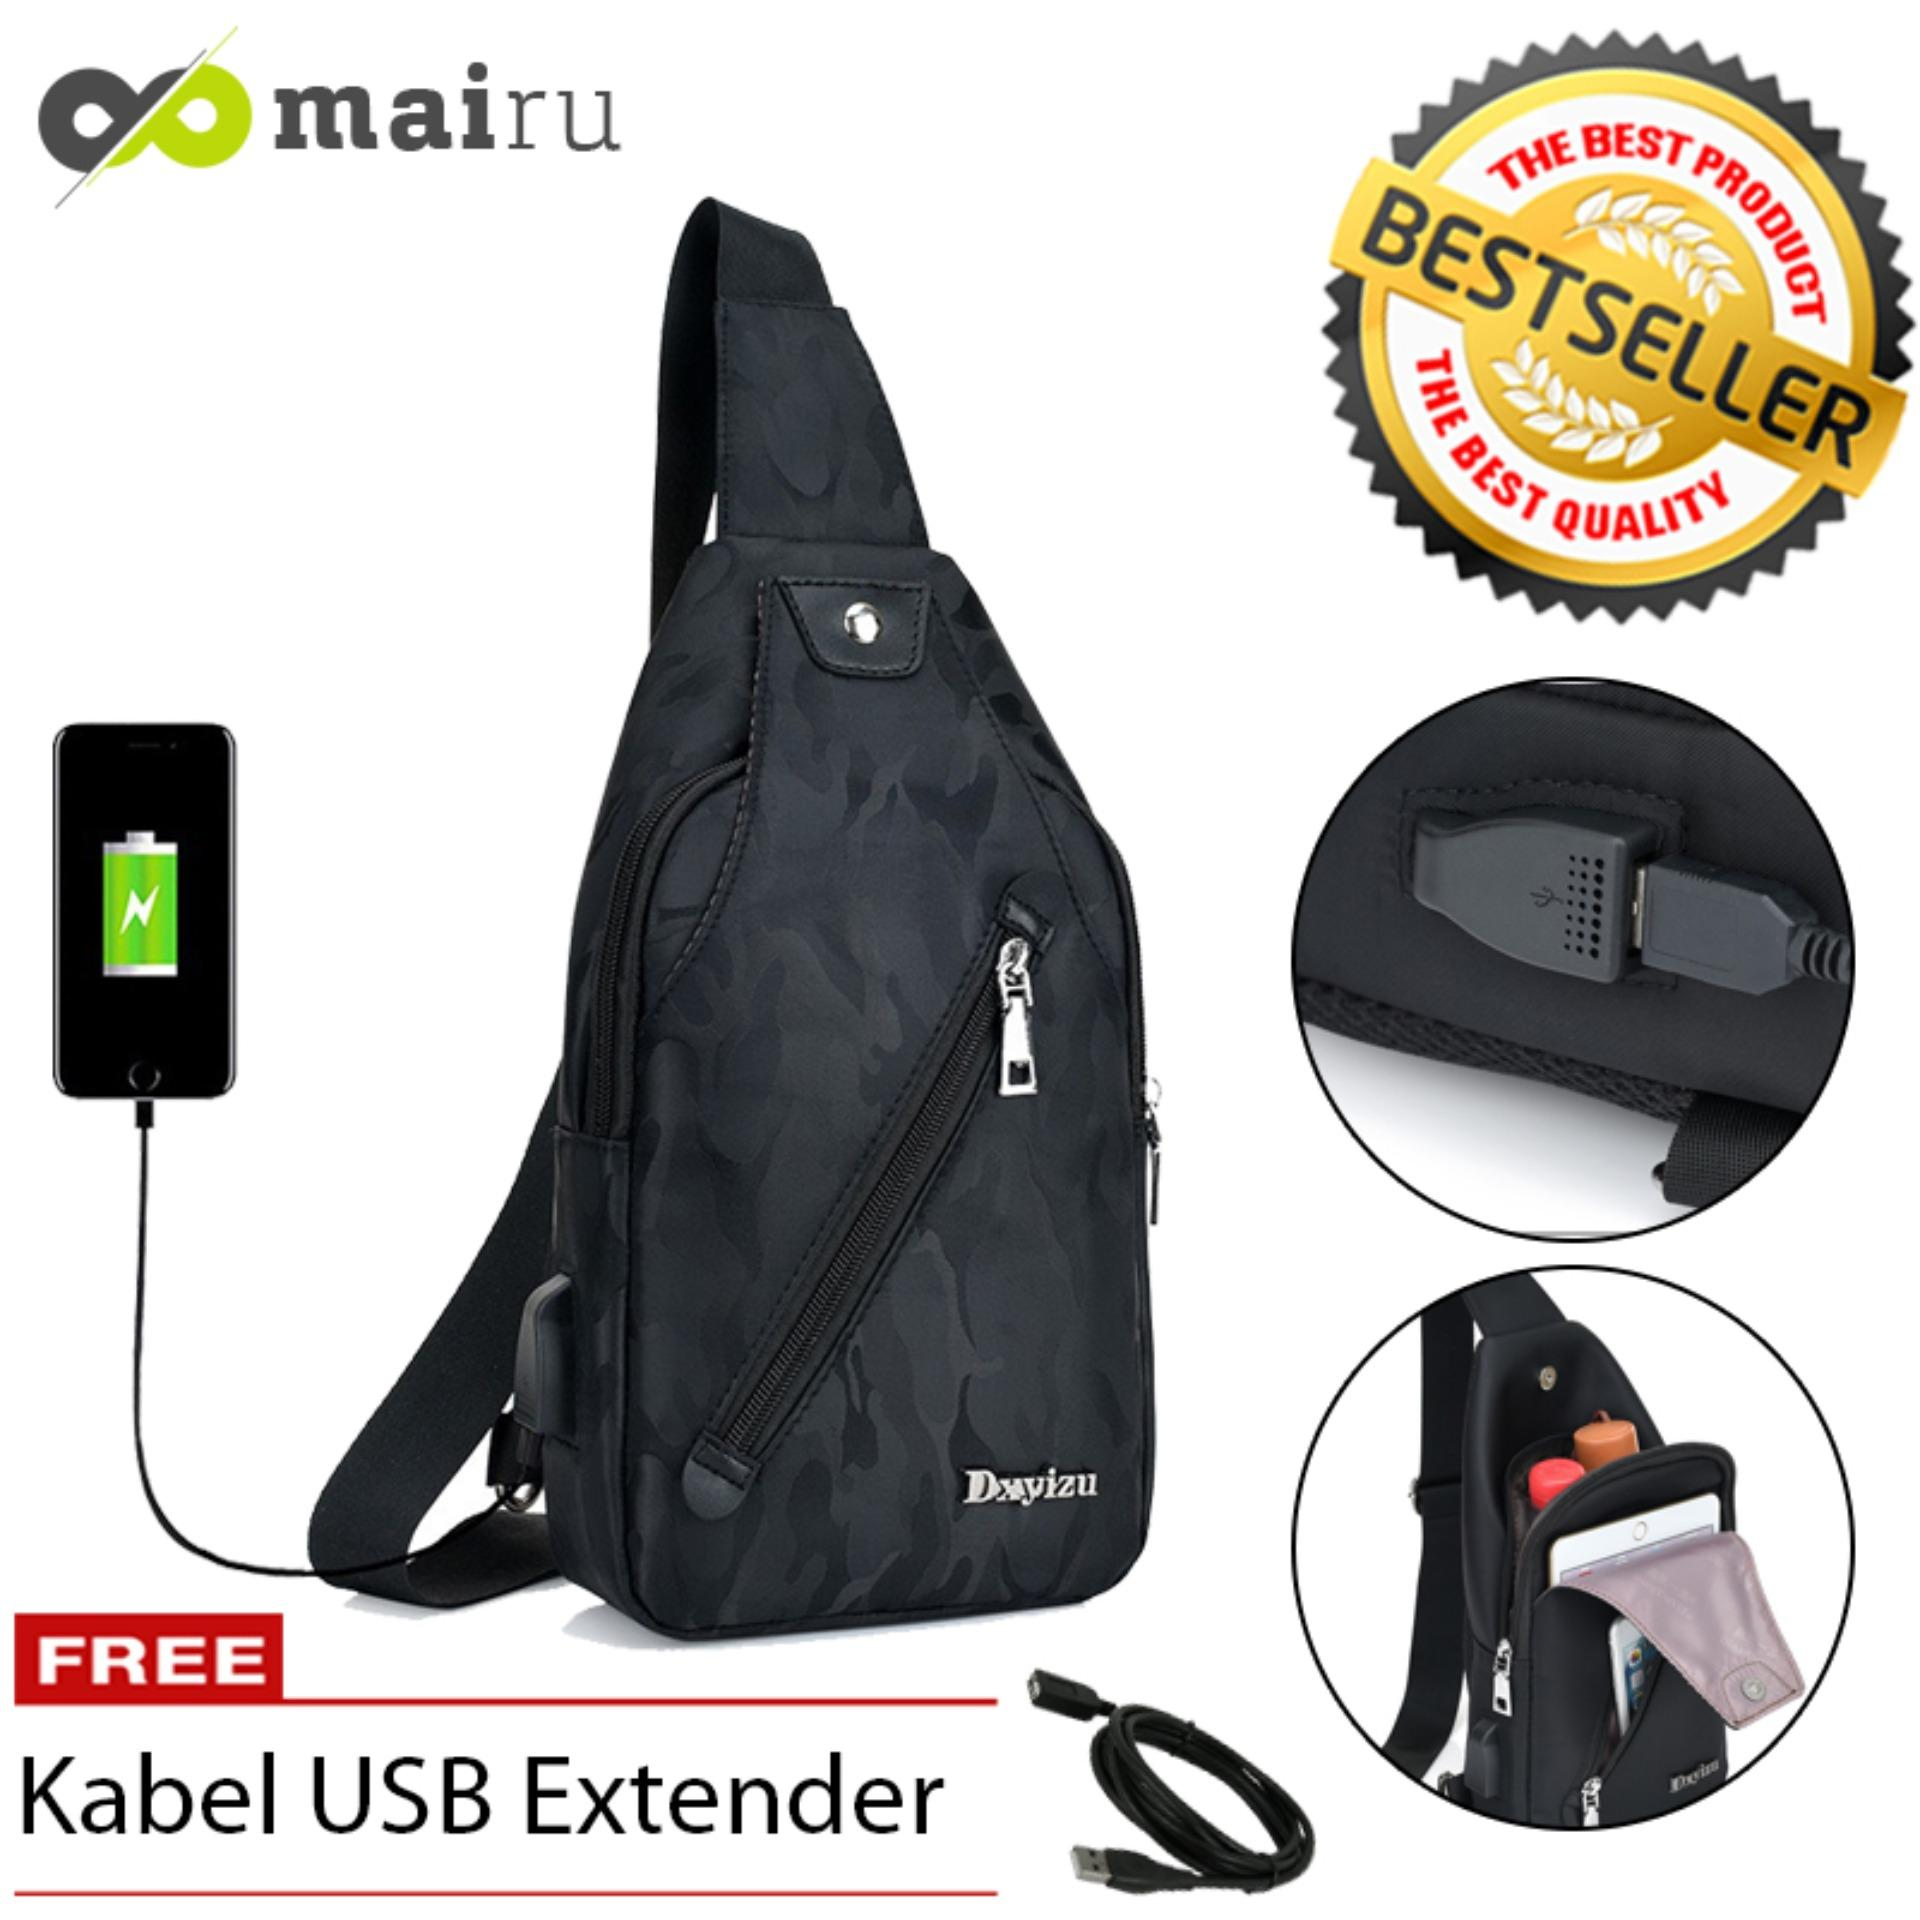 Harga Mairu Dxyizu 533 Tas Selempang Pria Sling Bag Cross Body With Usb Charger Support For Iphone Ipad Mini Xiaomi Samsung Tab Tablet 8 Anti Theft Fullset Murah